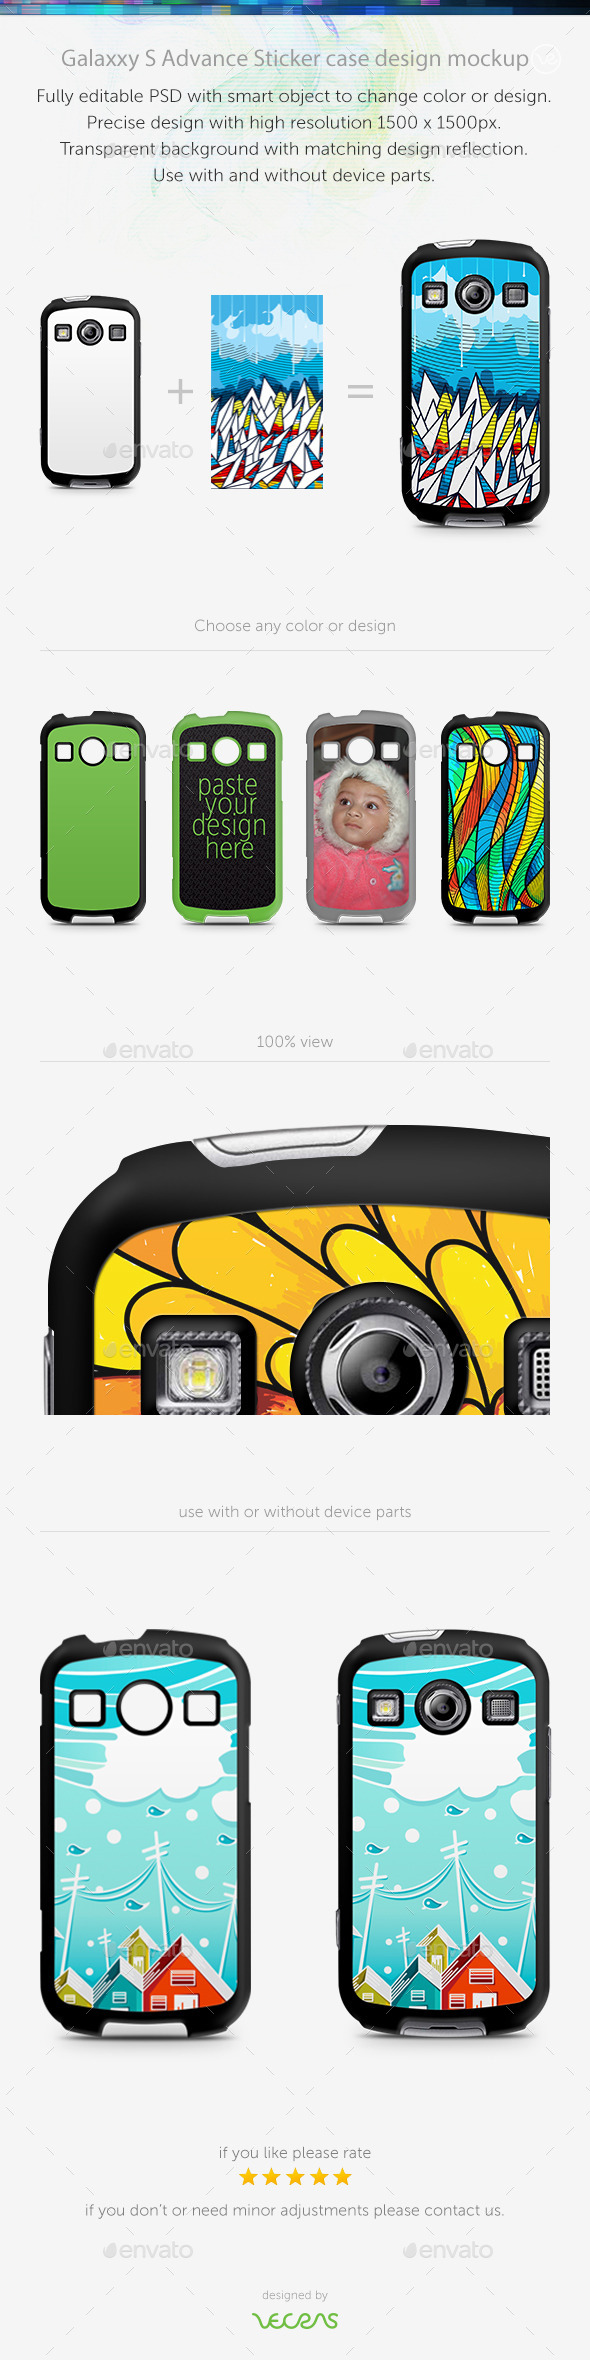 GraphicRiver Galaxxy X Cover 2 Sticker Case Design Mockup 10818095